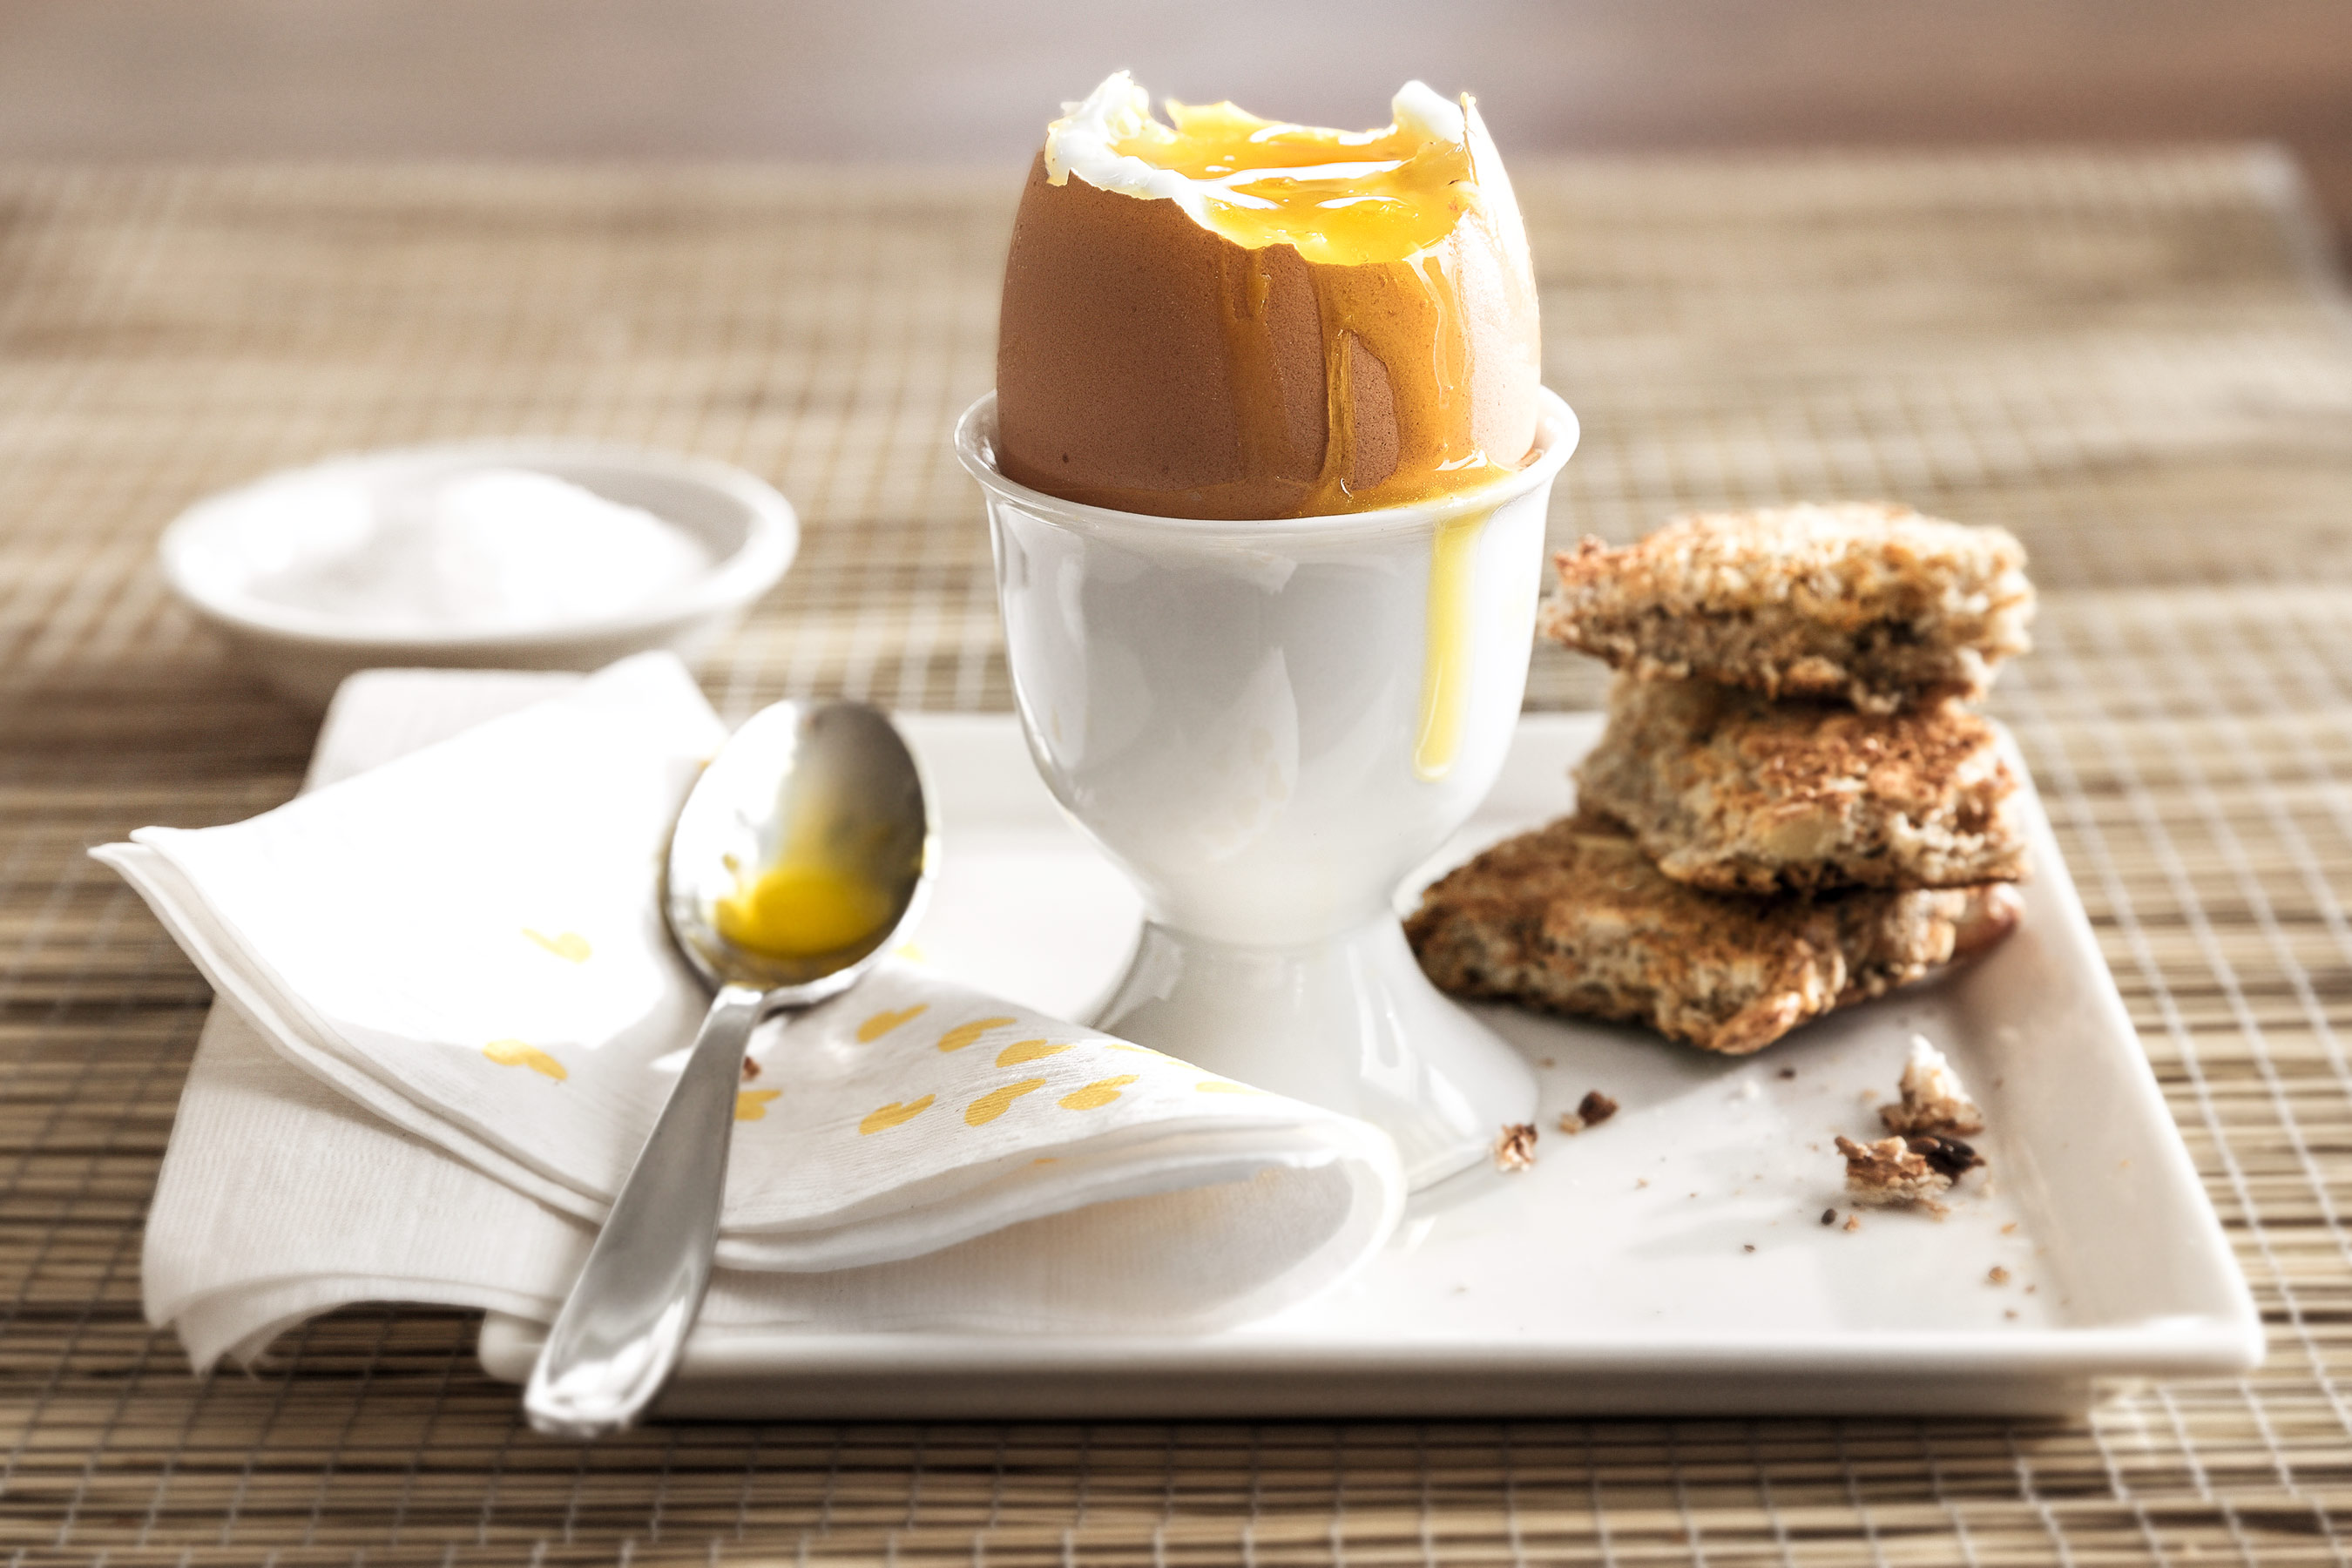 Soft boiled egg in an egg cup with toast bites and salt on side